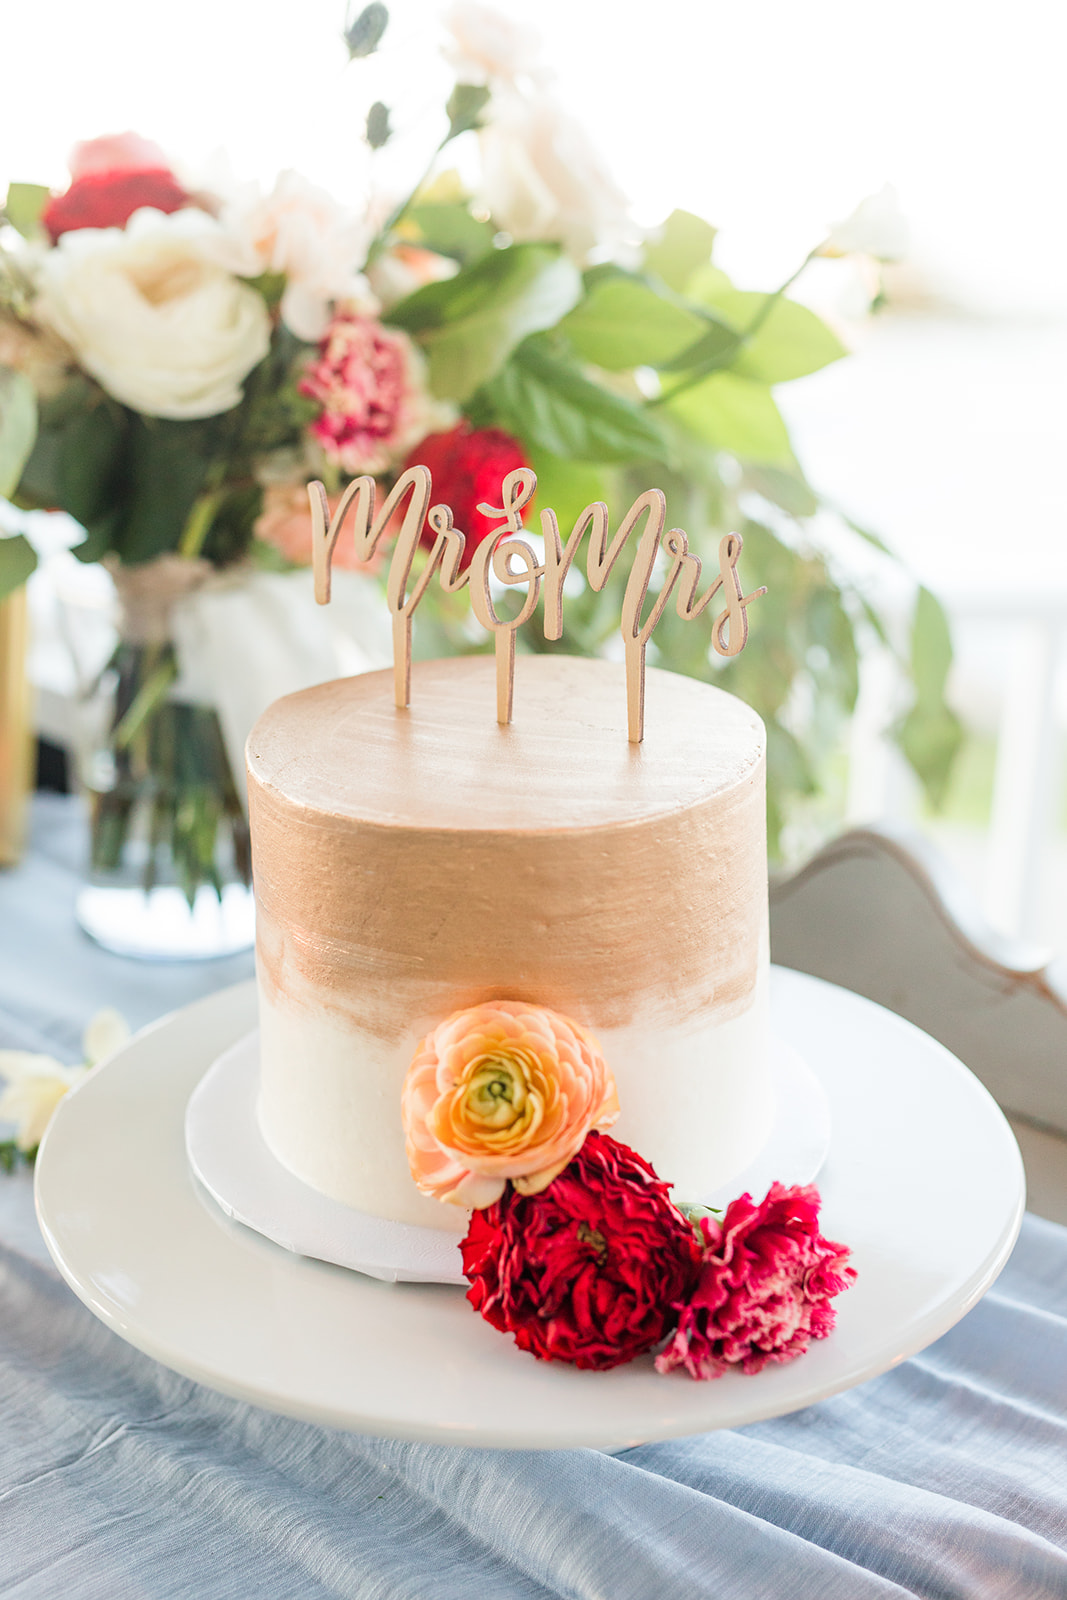 Gold and white cutting cake